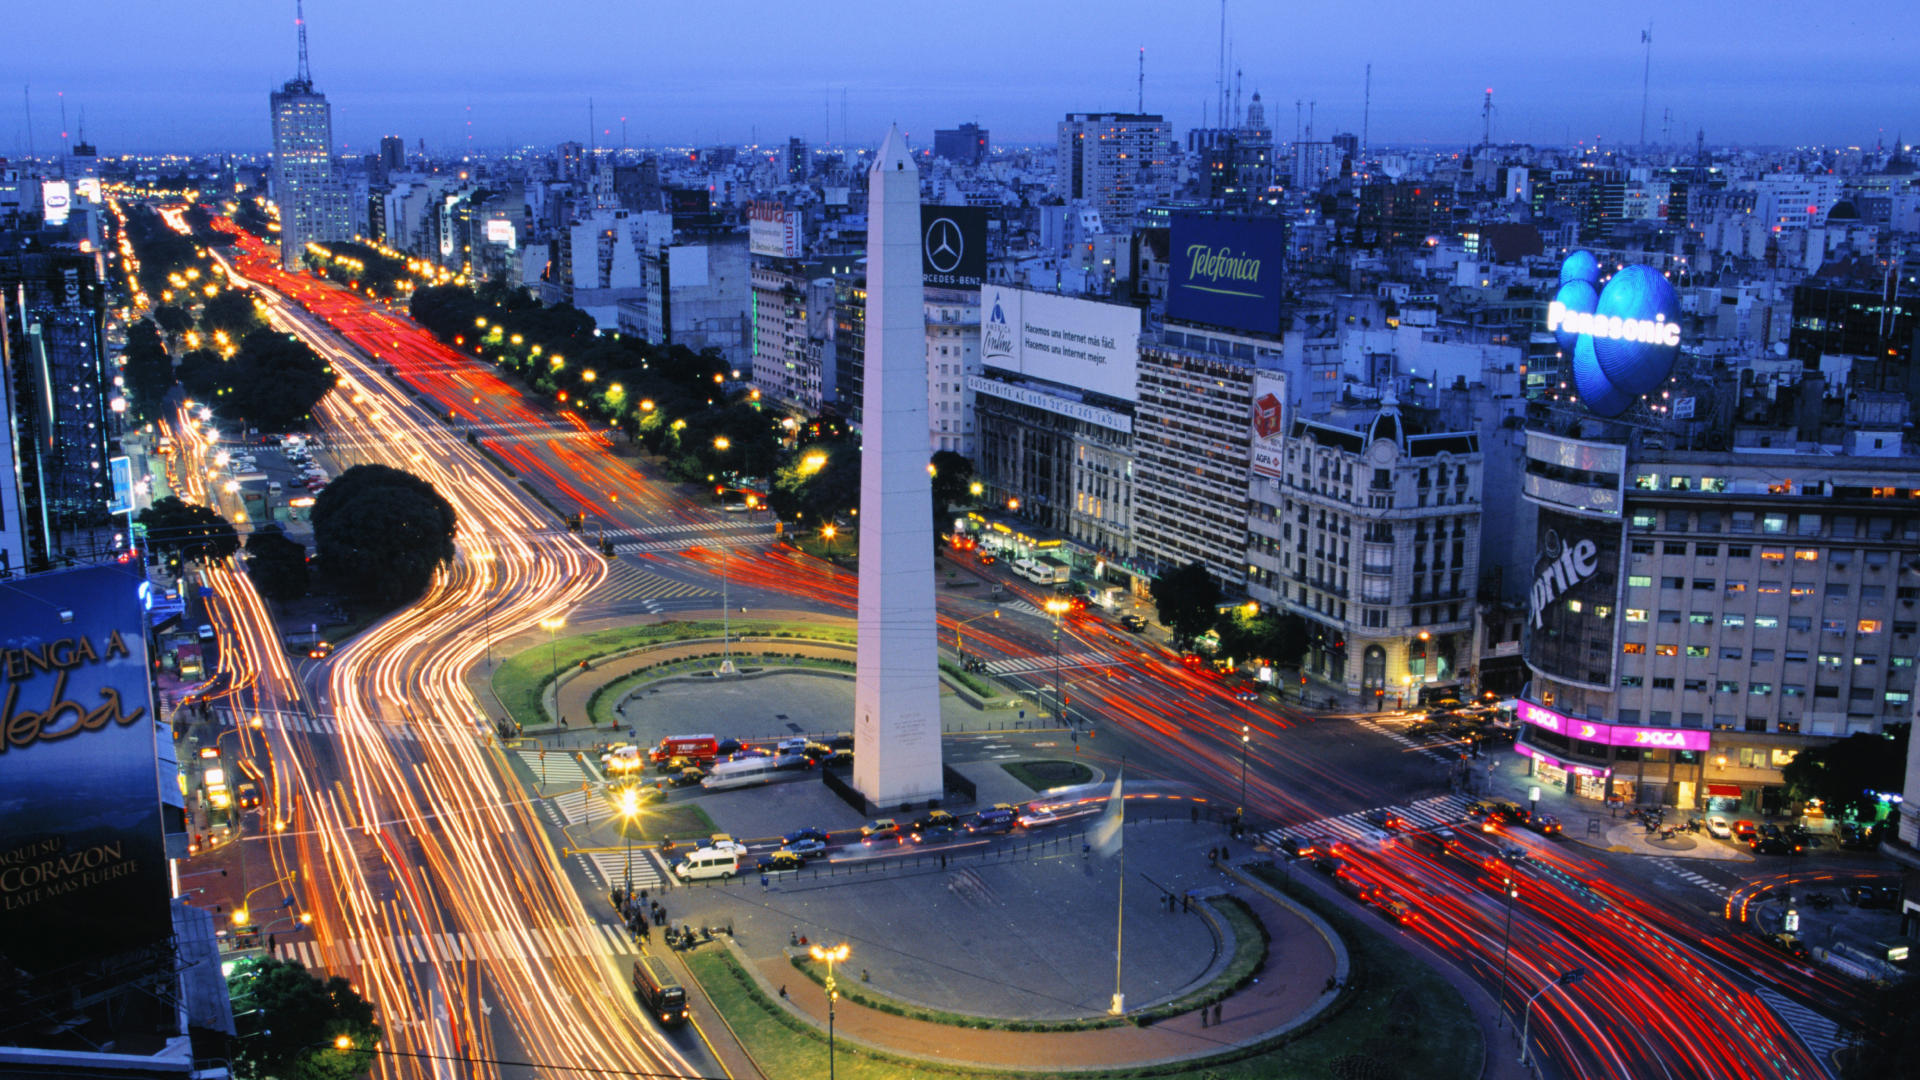 The official name of Argentina is the Argentine Republic.